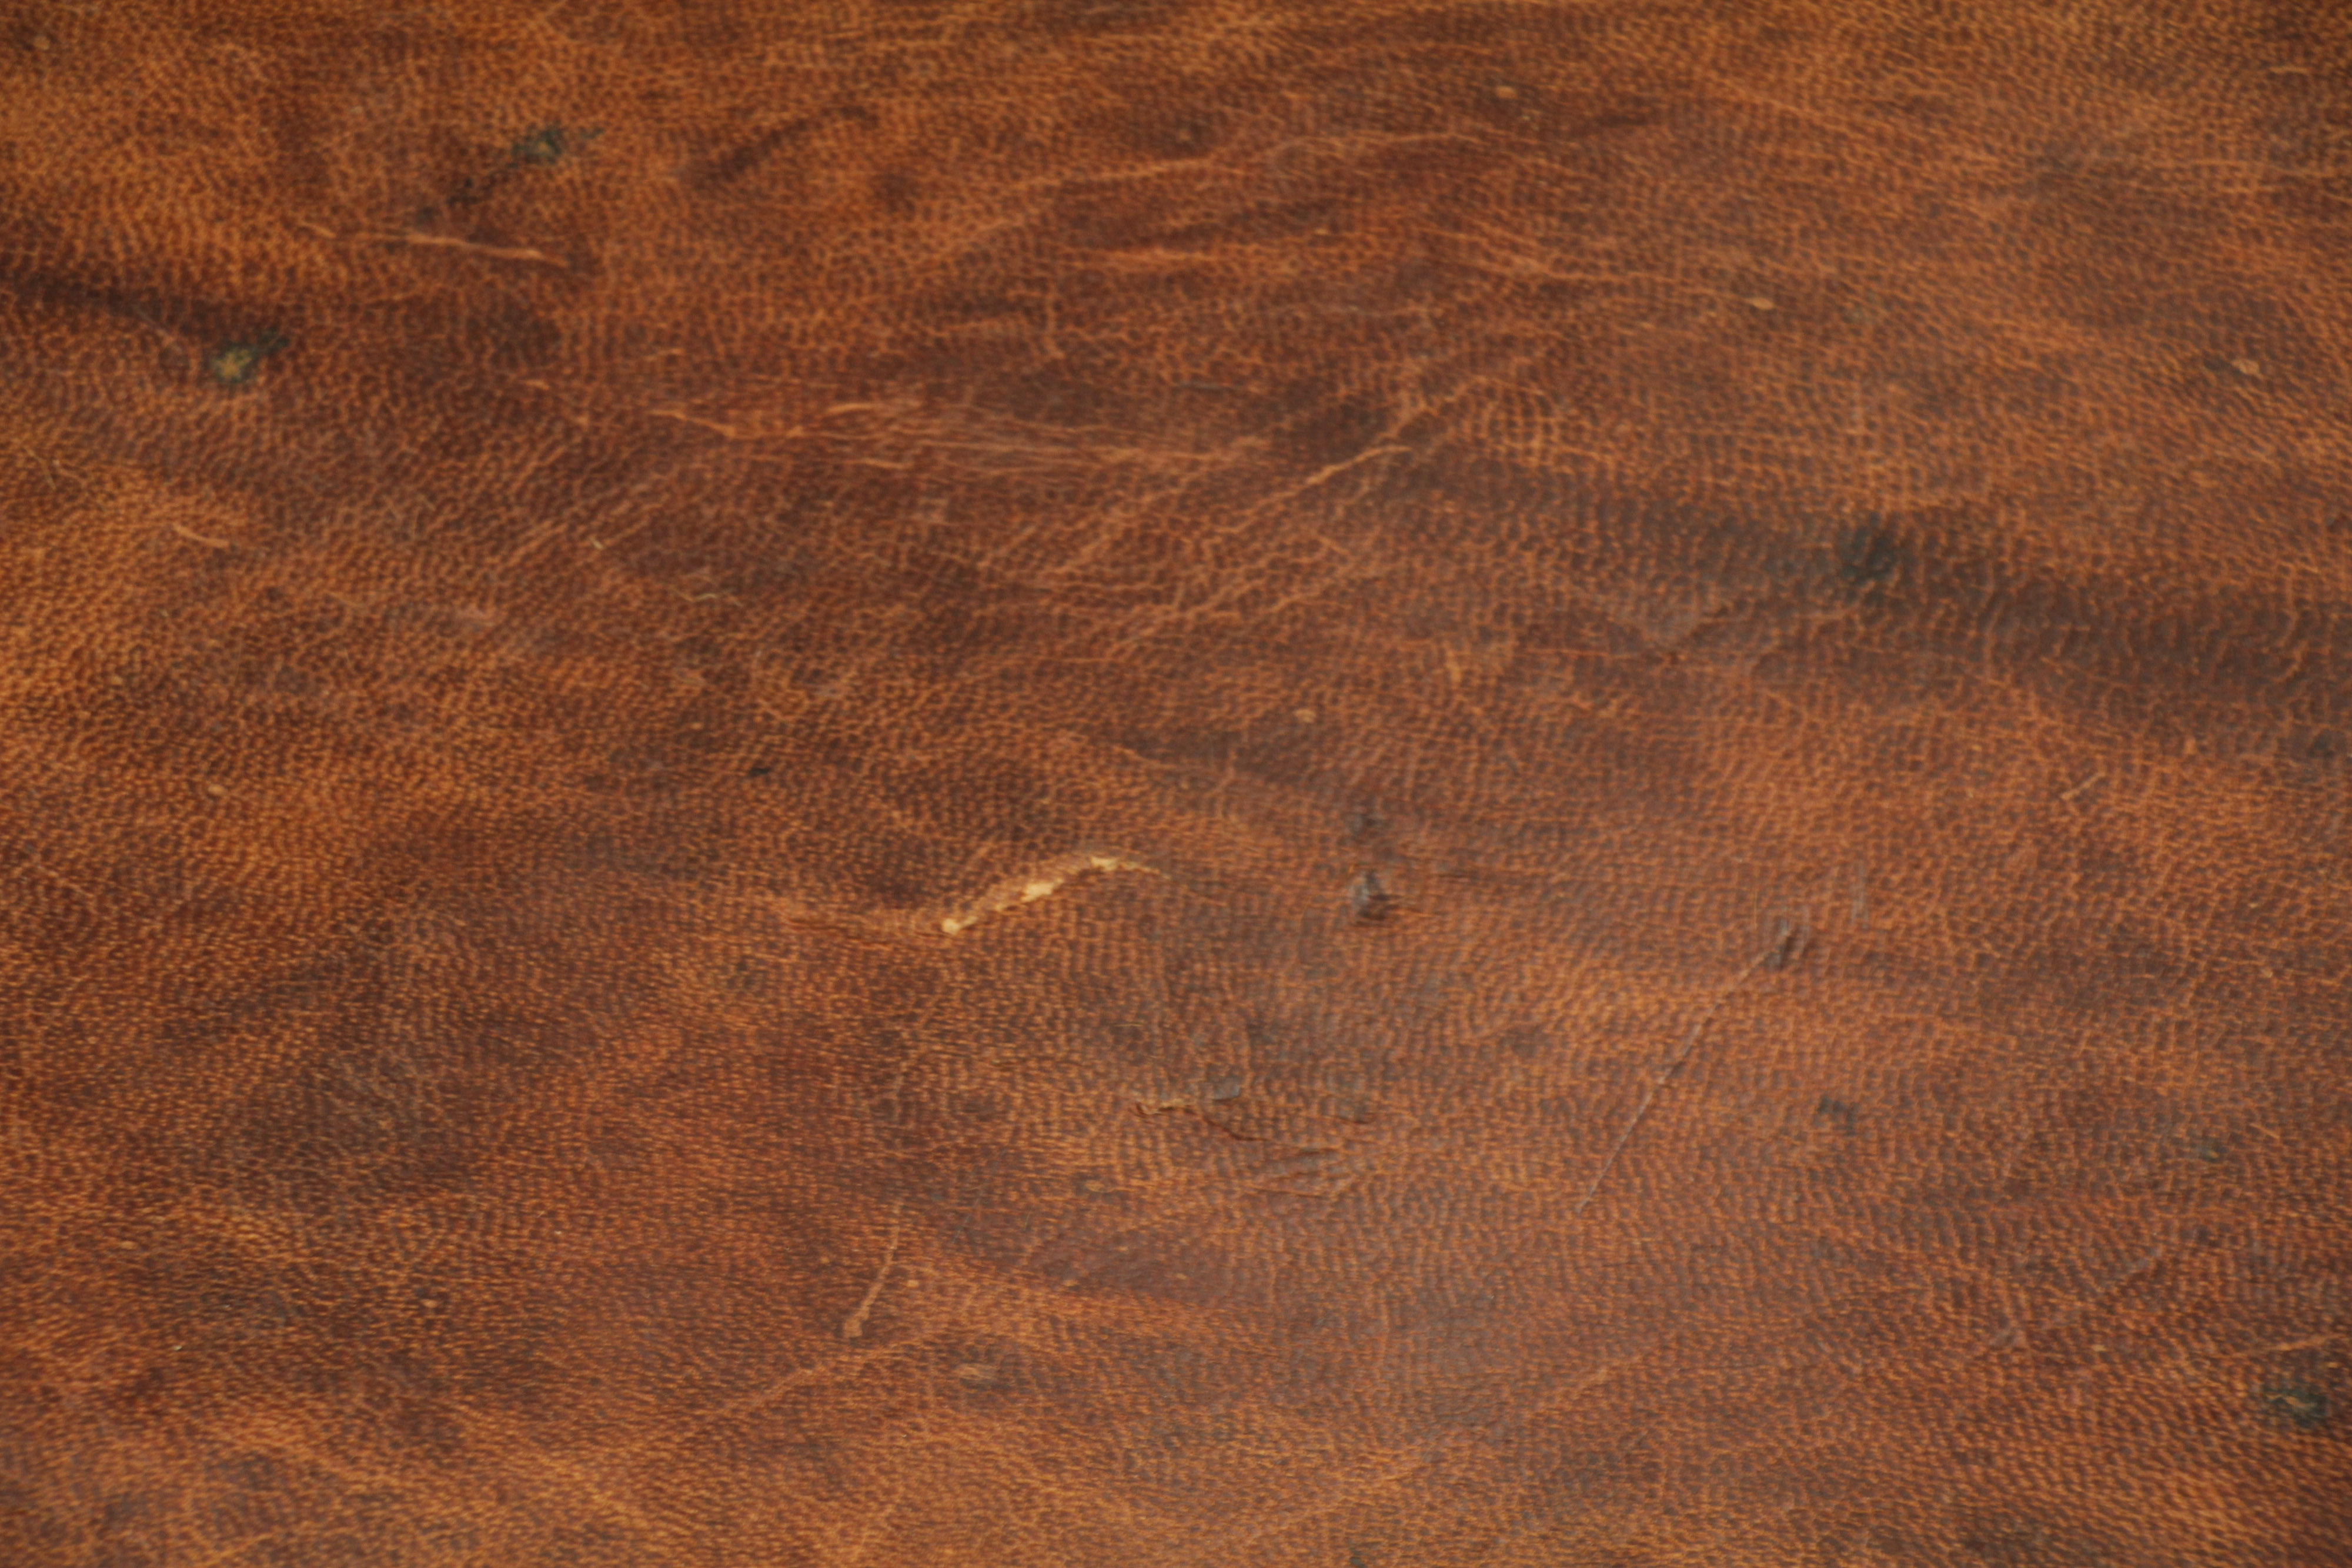 Vintage Leder Brown Leather Texture Pattern Material Stock Photo Old